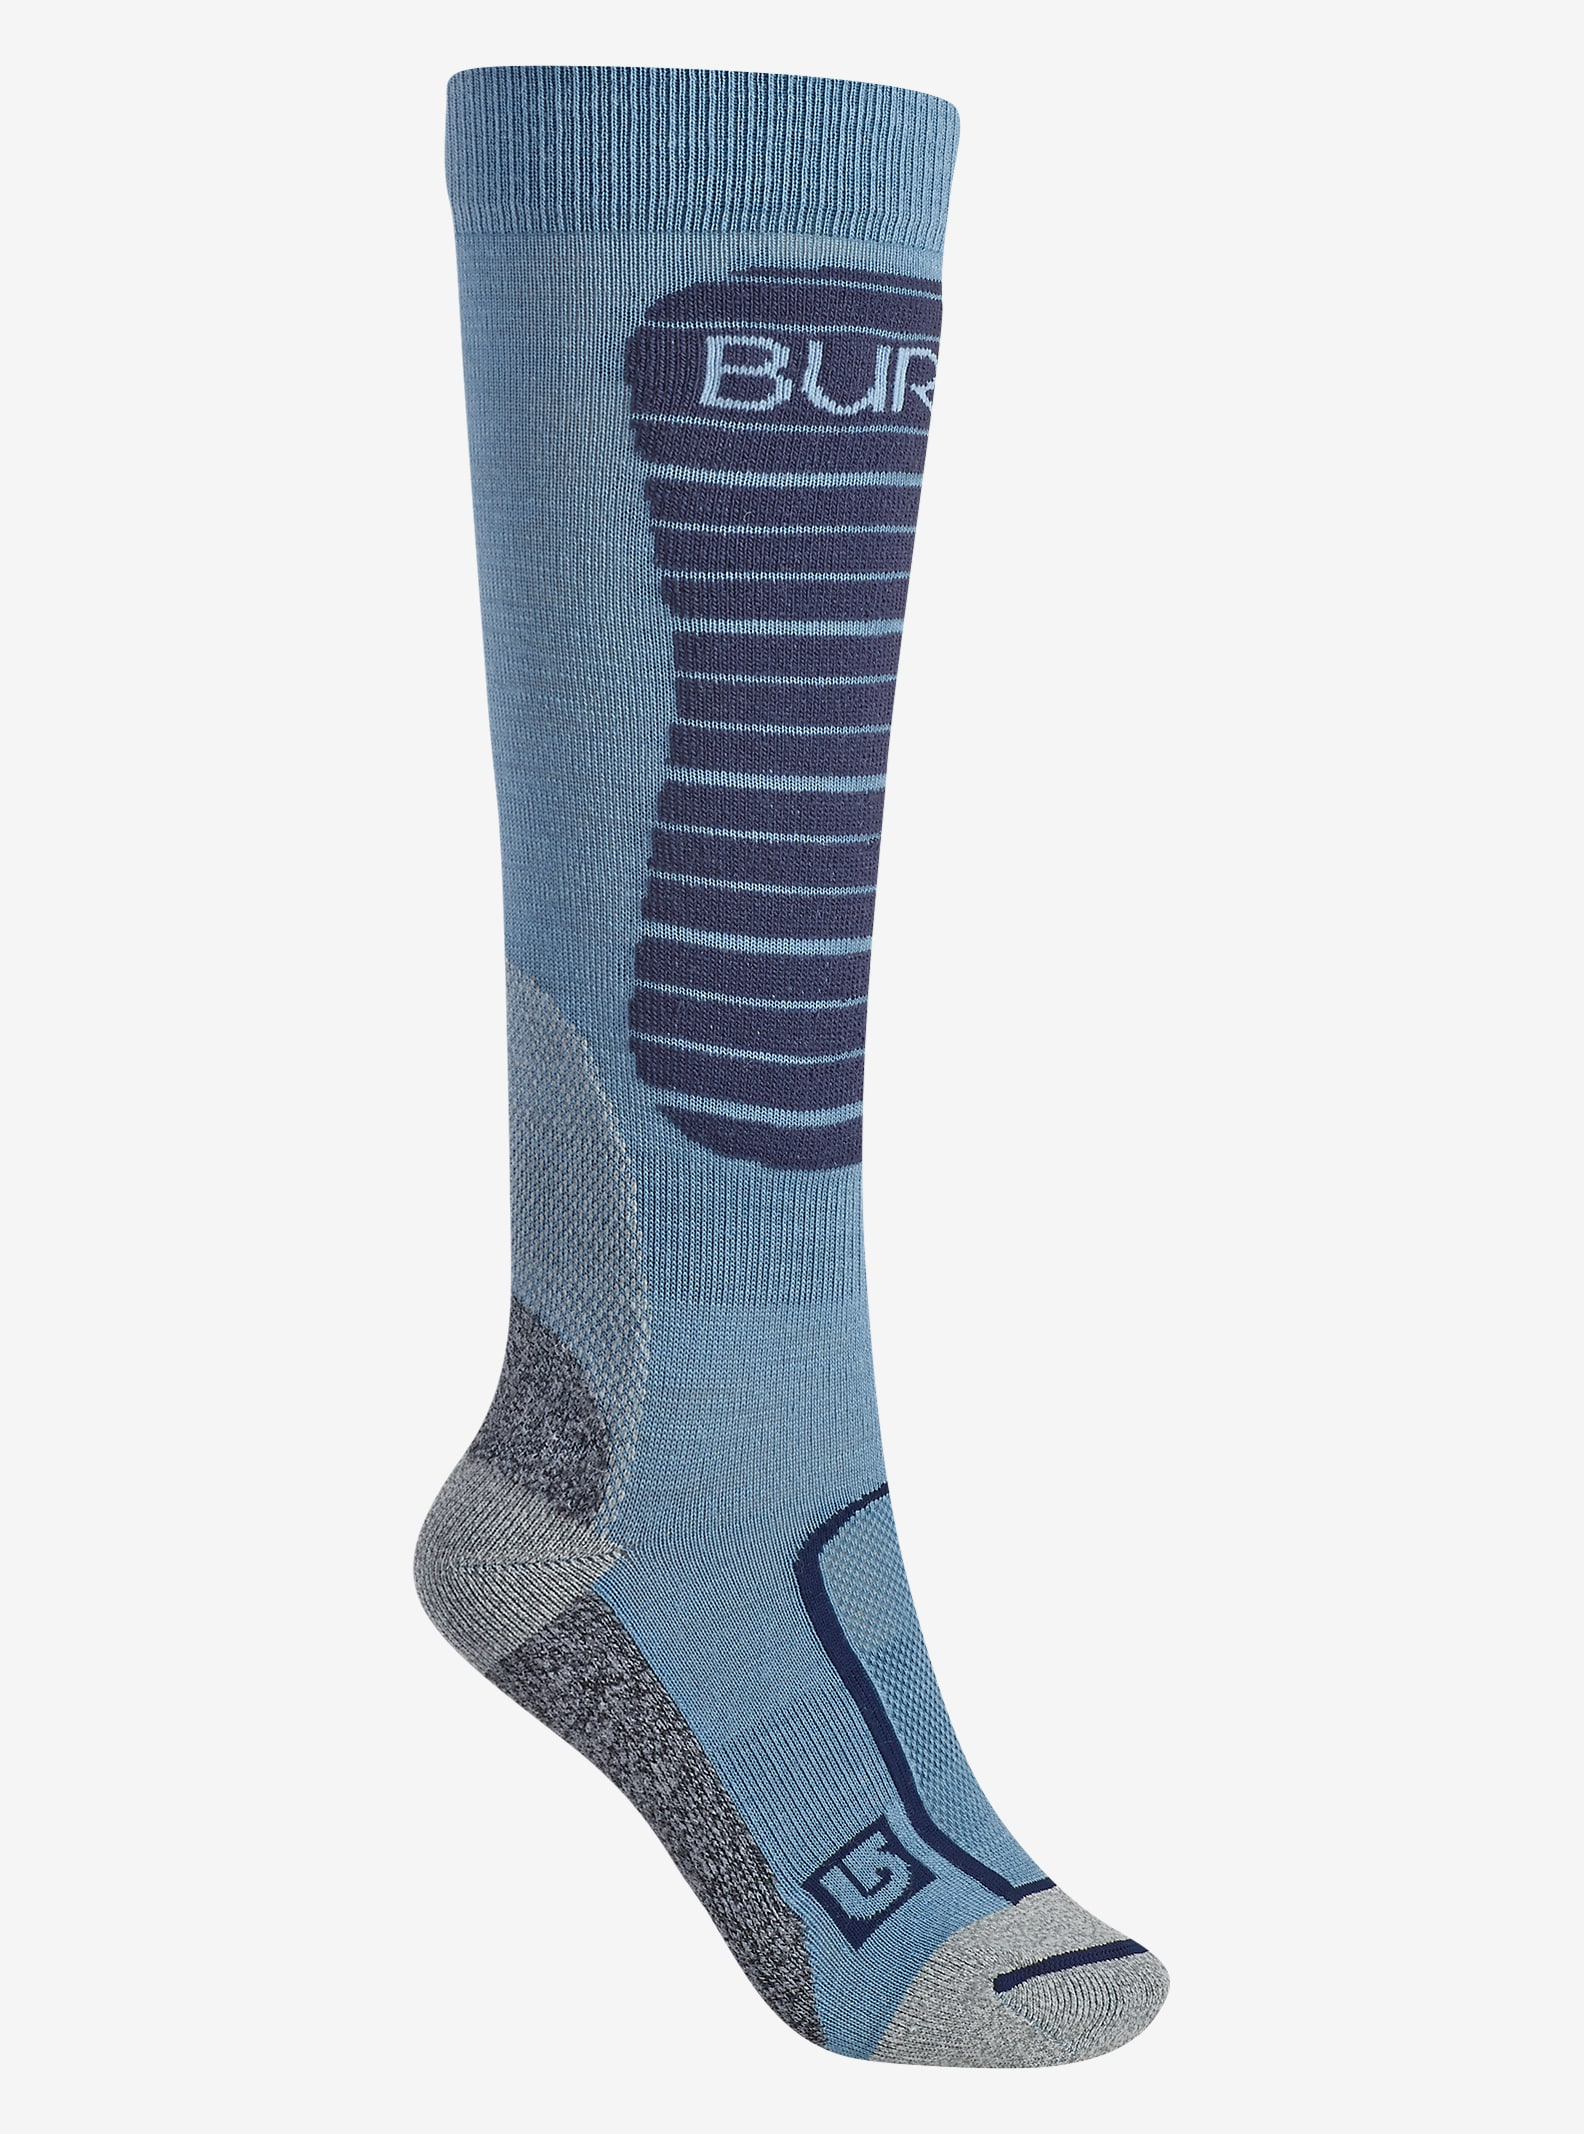 Burton Merino Phase Sock shown in Infinity